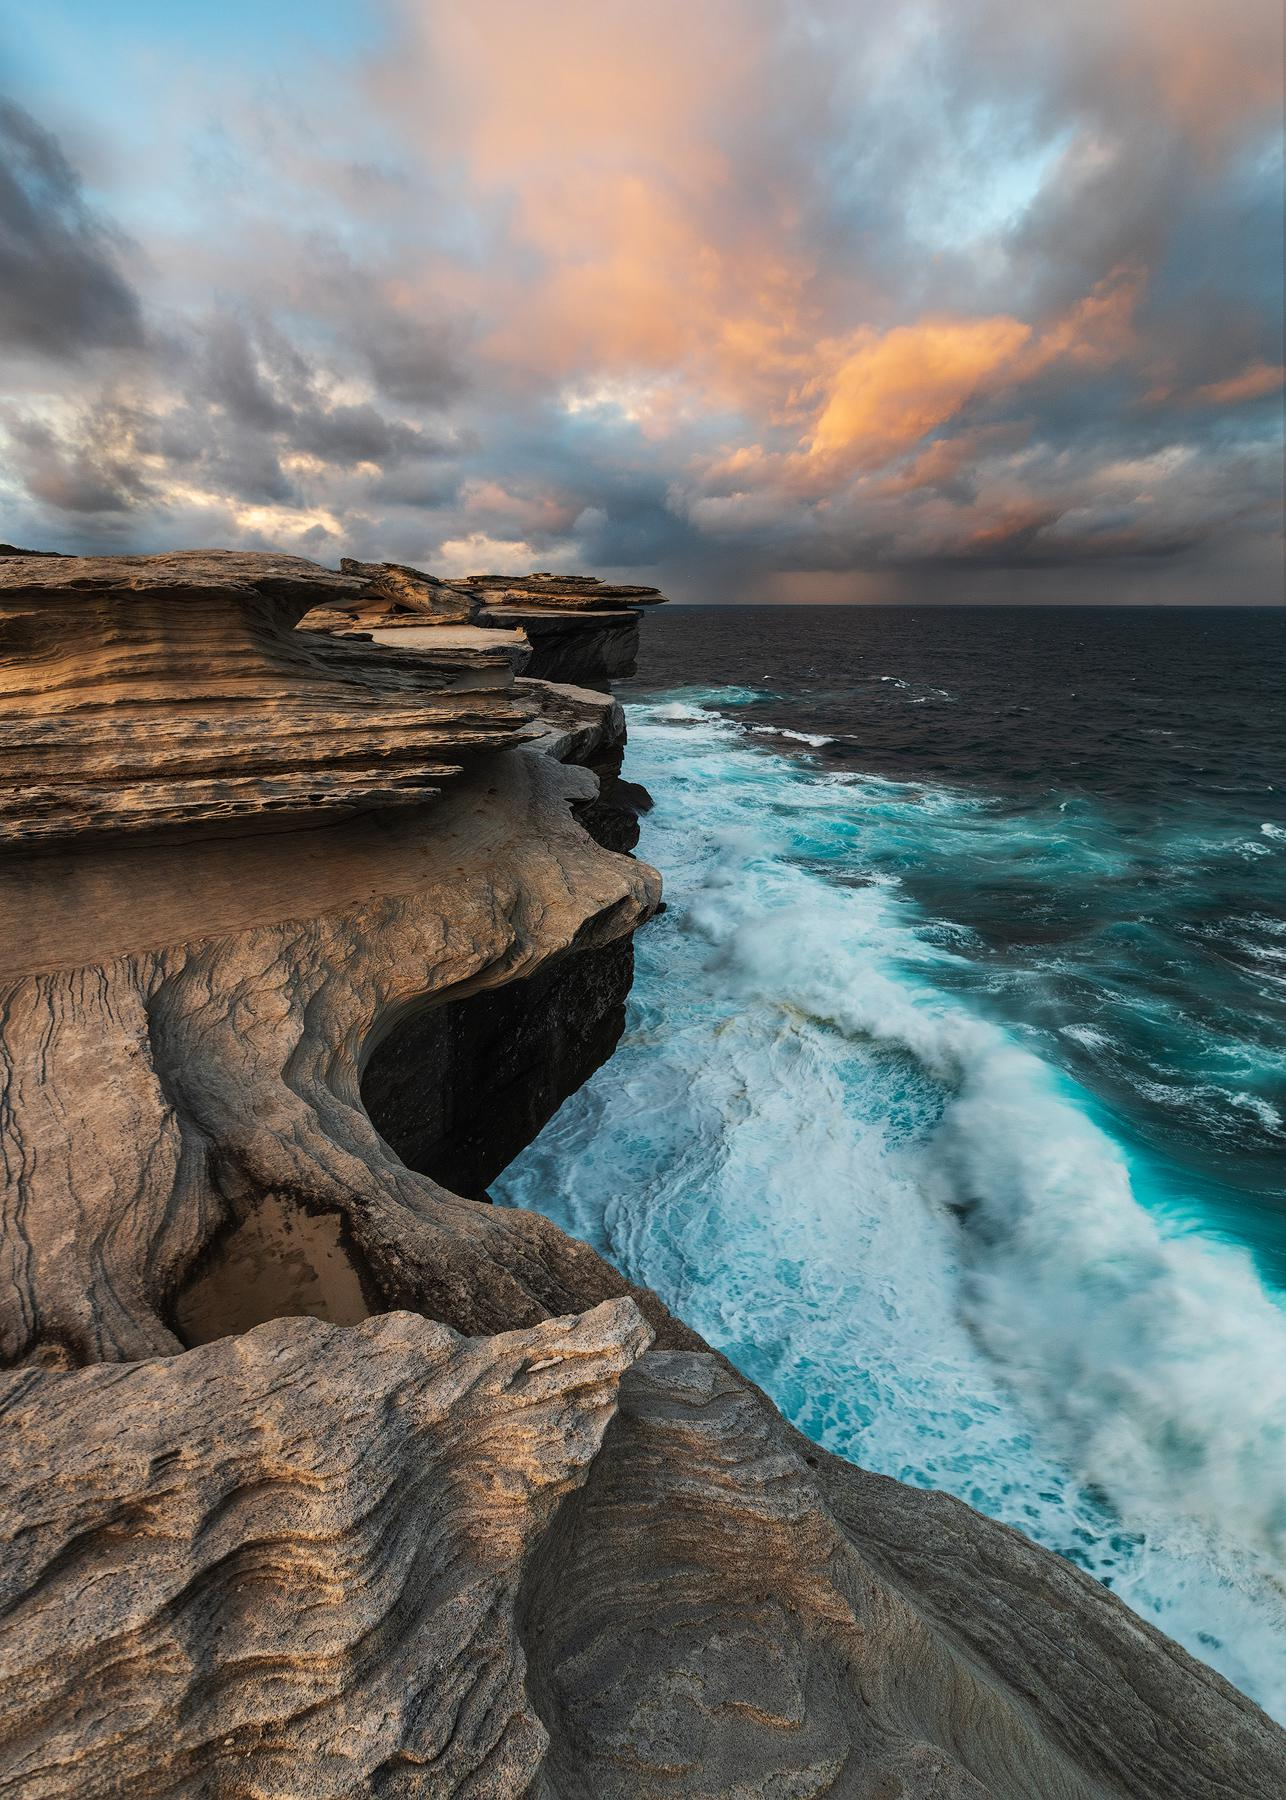 Seascape sunset at the cliff in Sydney, Australia